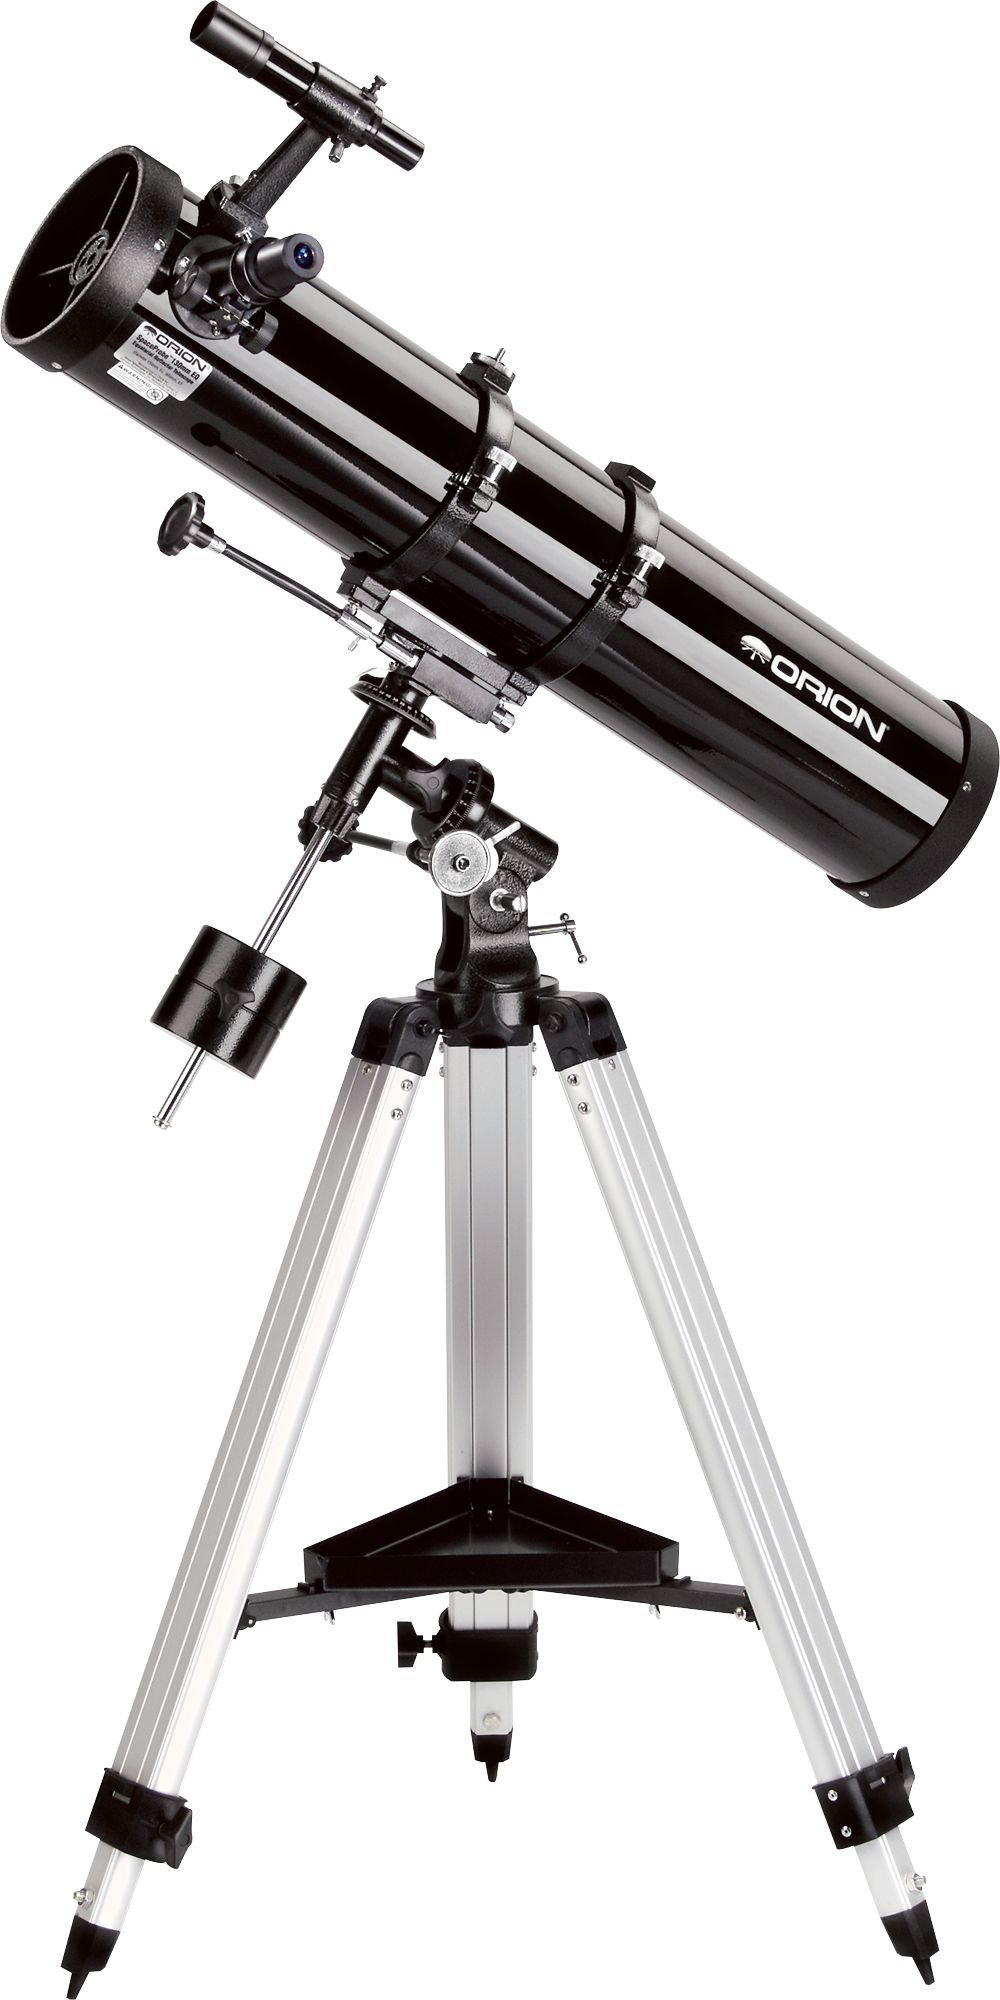 Orion 9851 SpaceProbe 130 EQ Reflector Telescope by Orion